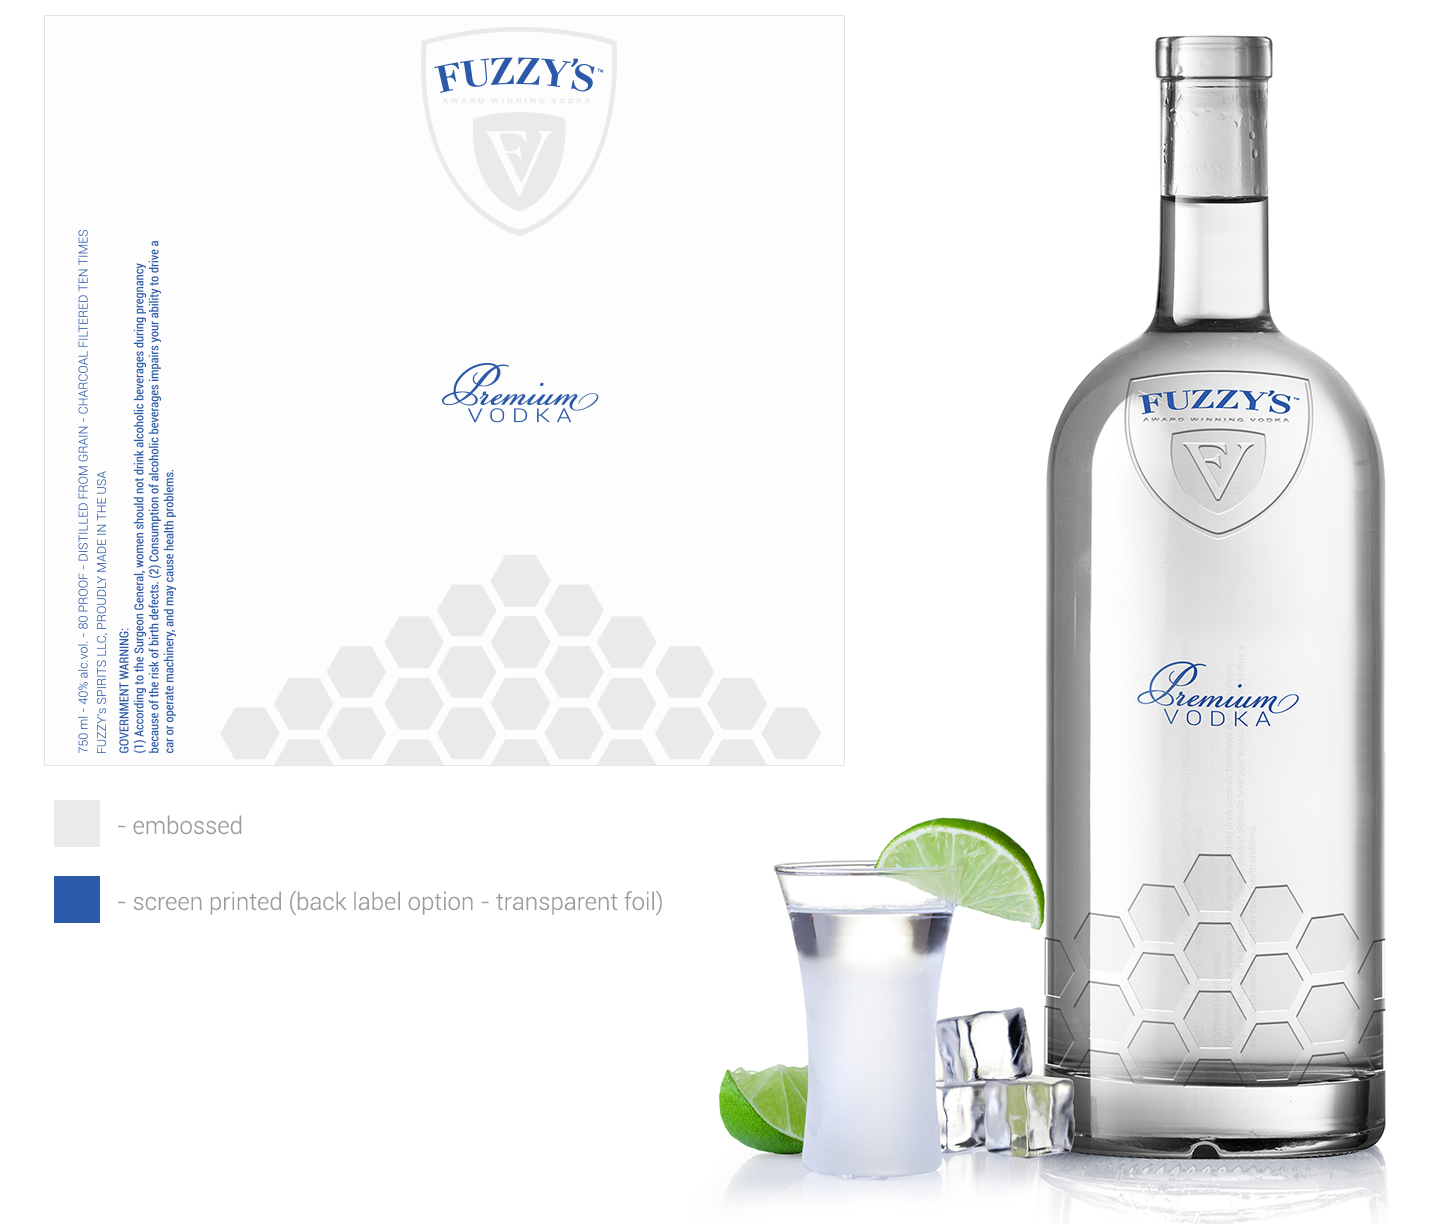 Help create the next great vodka label and bottle